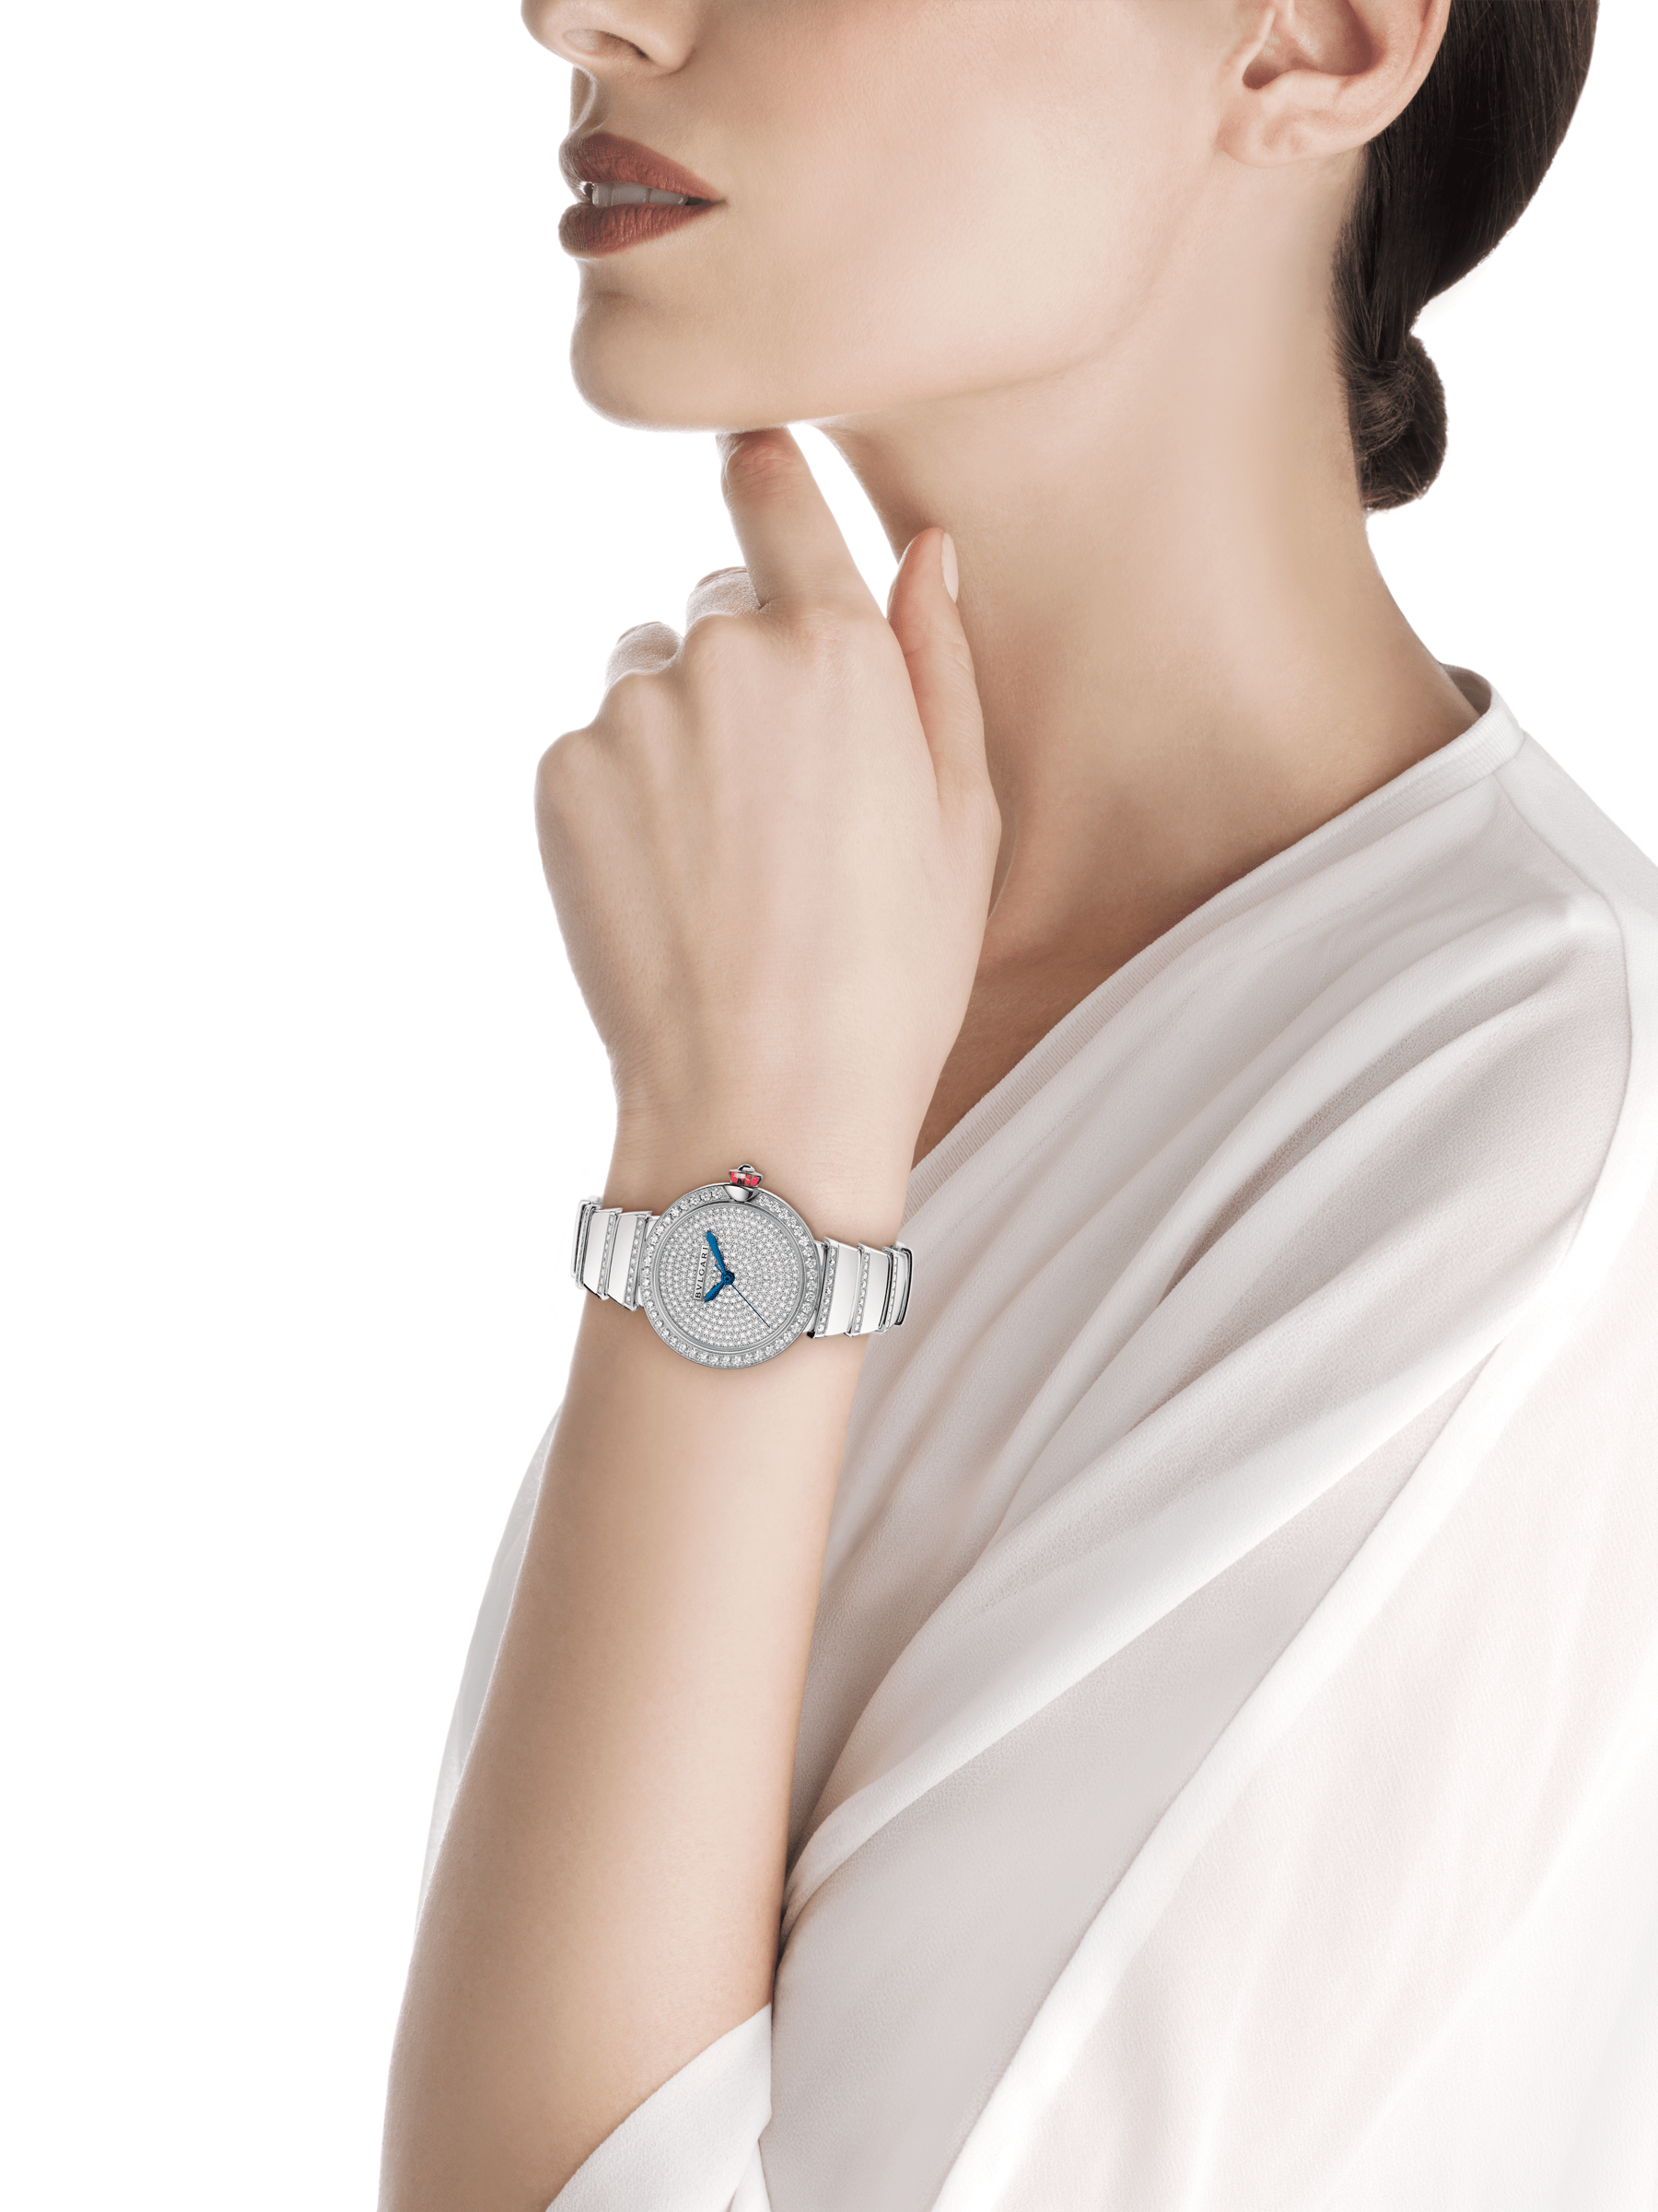 LVCEA watch in 18 kt white gold and brilliant-cut diamond case and bracelet, with full pavé diamond dial. 102380 image 4